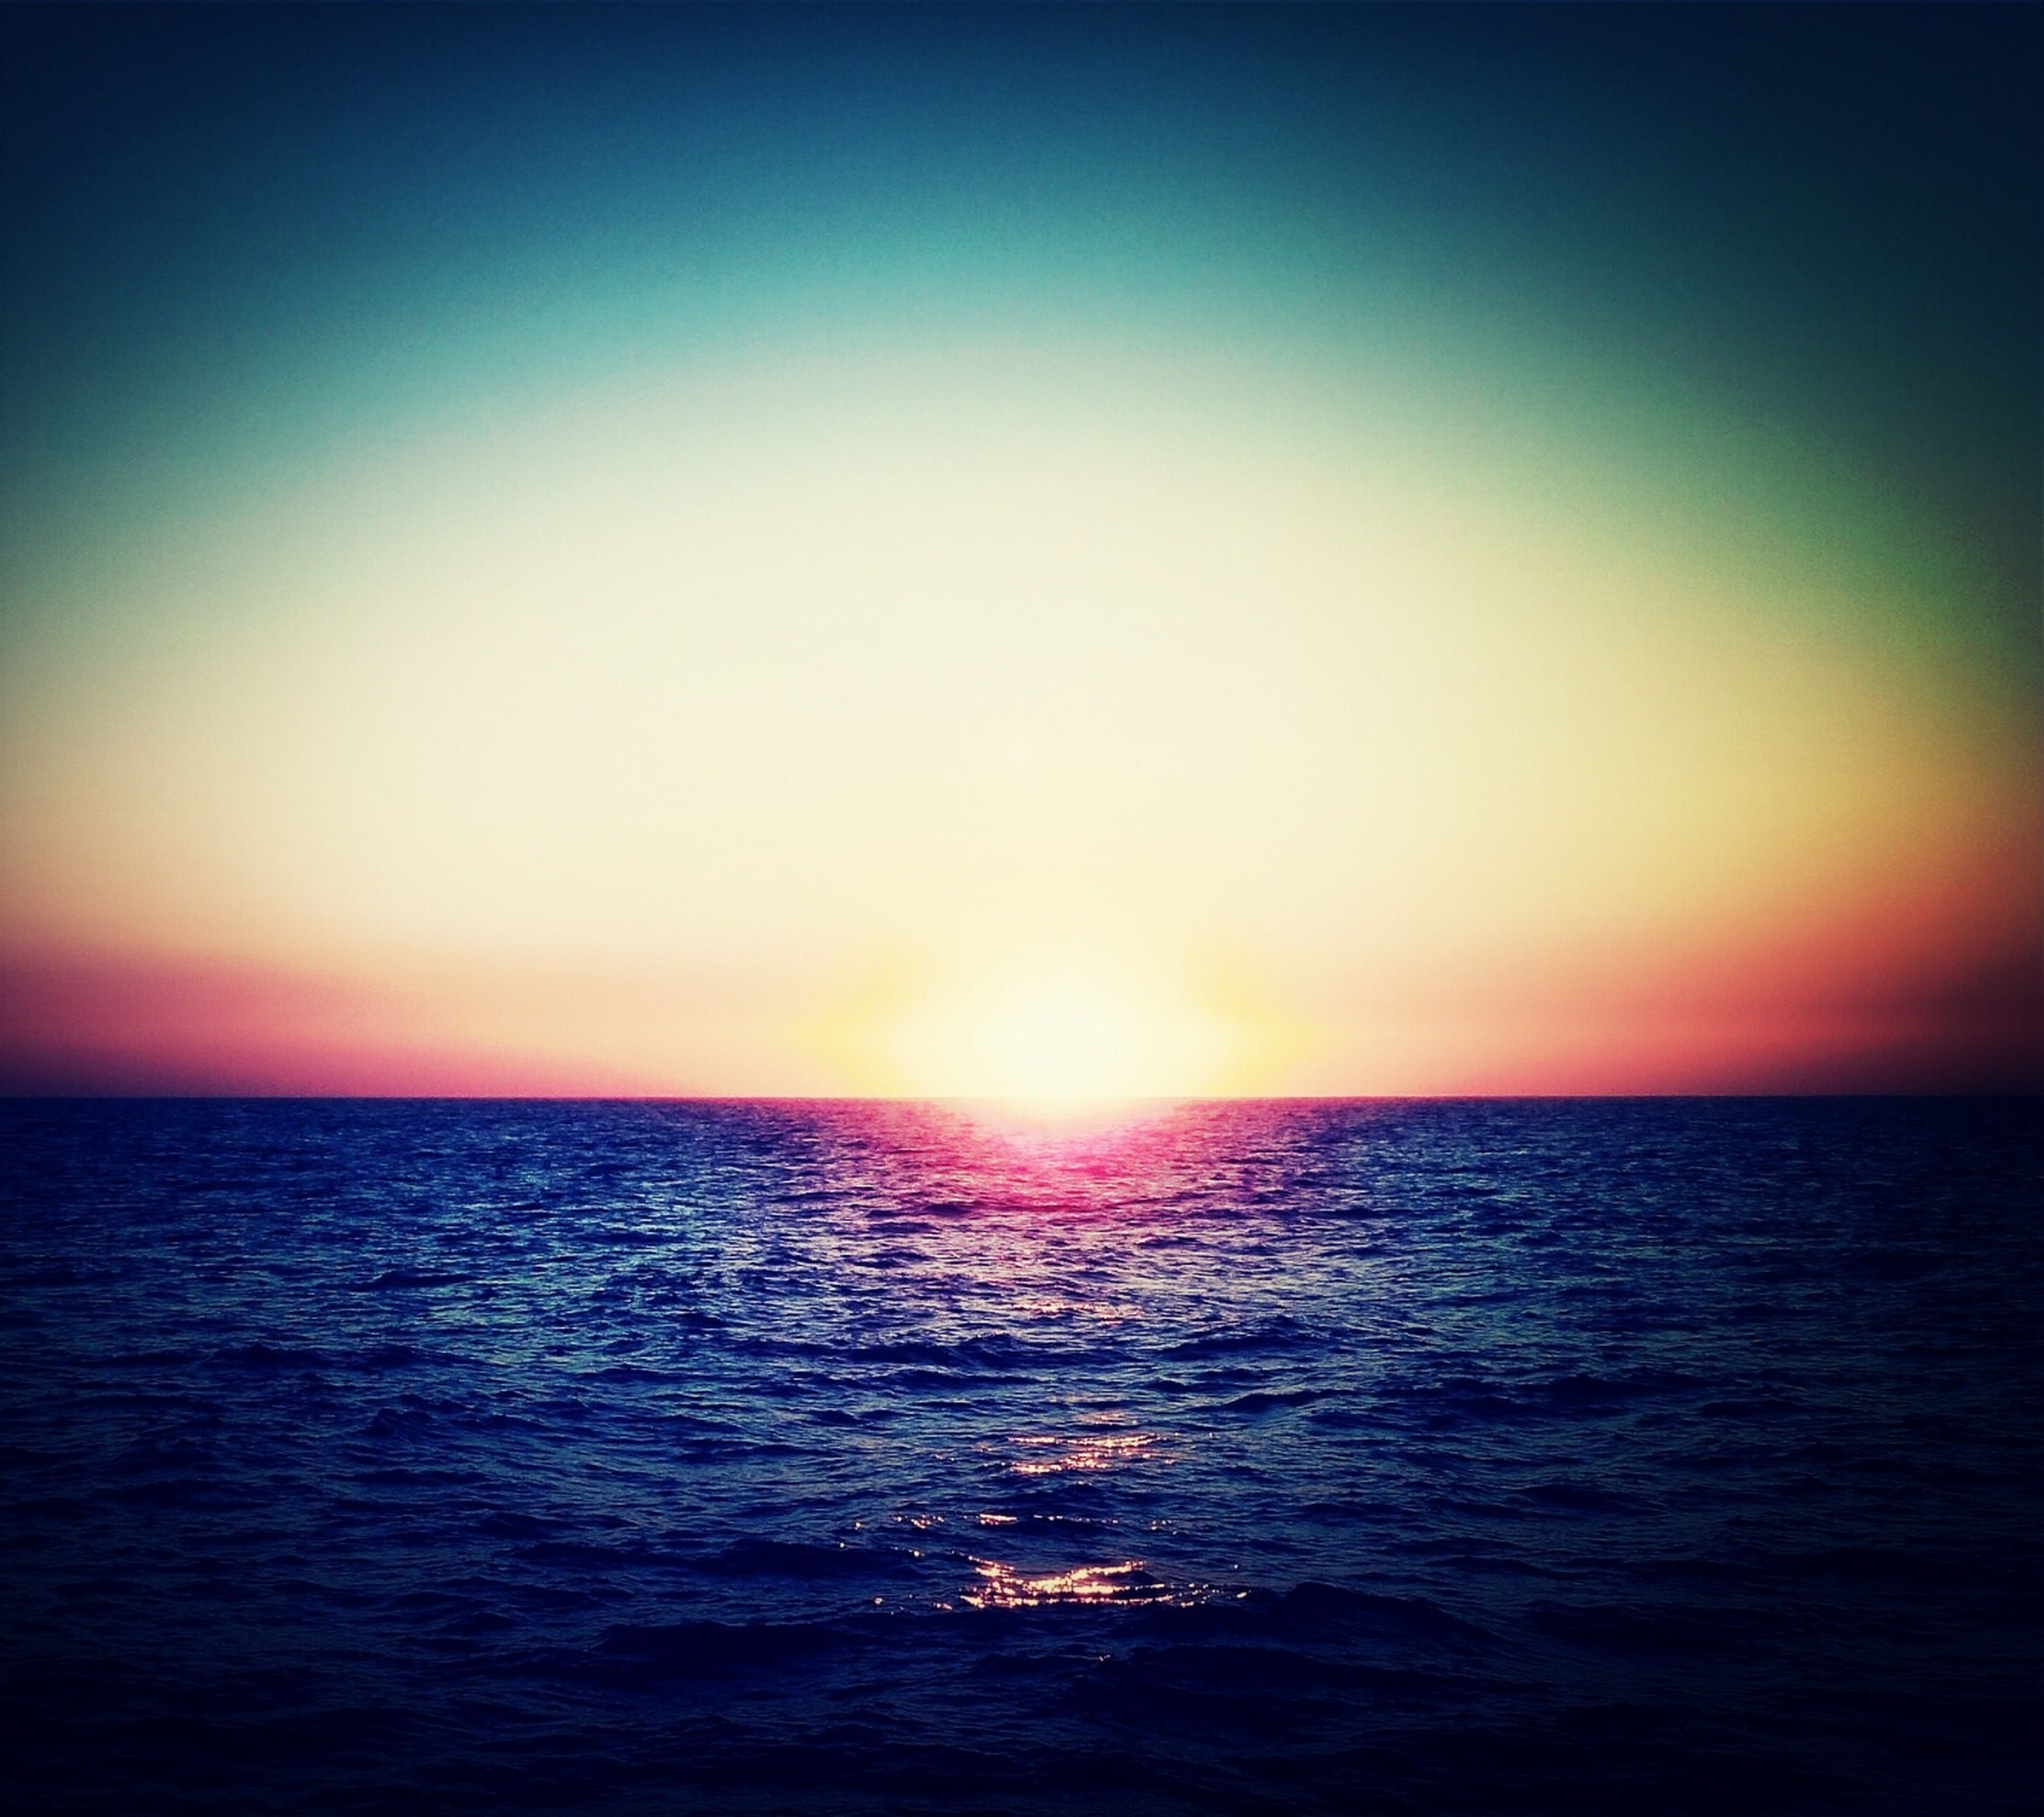 sea, horizon over water, water, sunset, sun, tranquil scene, scenics, tranquility, beauty in nature, waterfront, idyllic, clear sky, orange color, rippled, copy space, nature, seascape, reflection, sky, sunlight